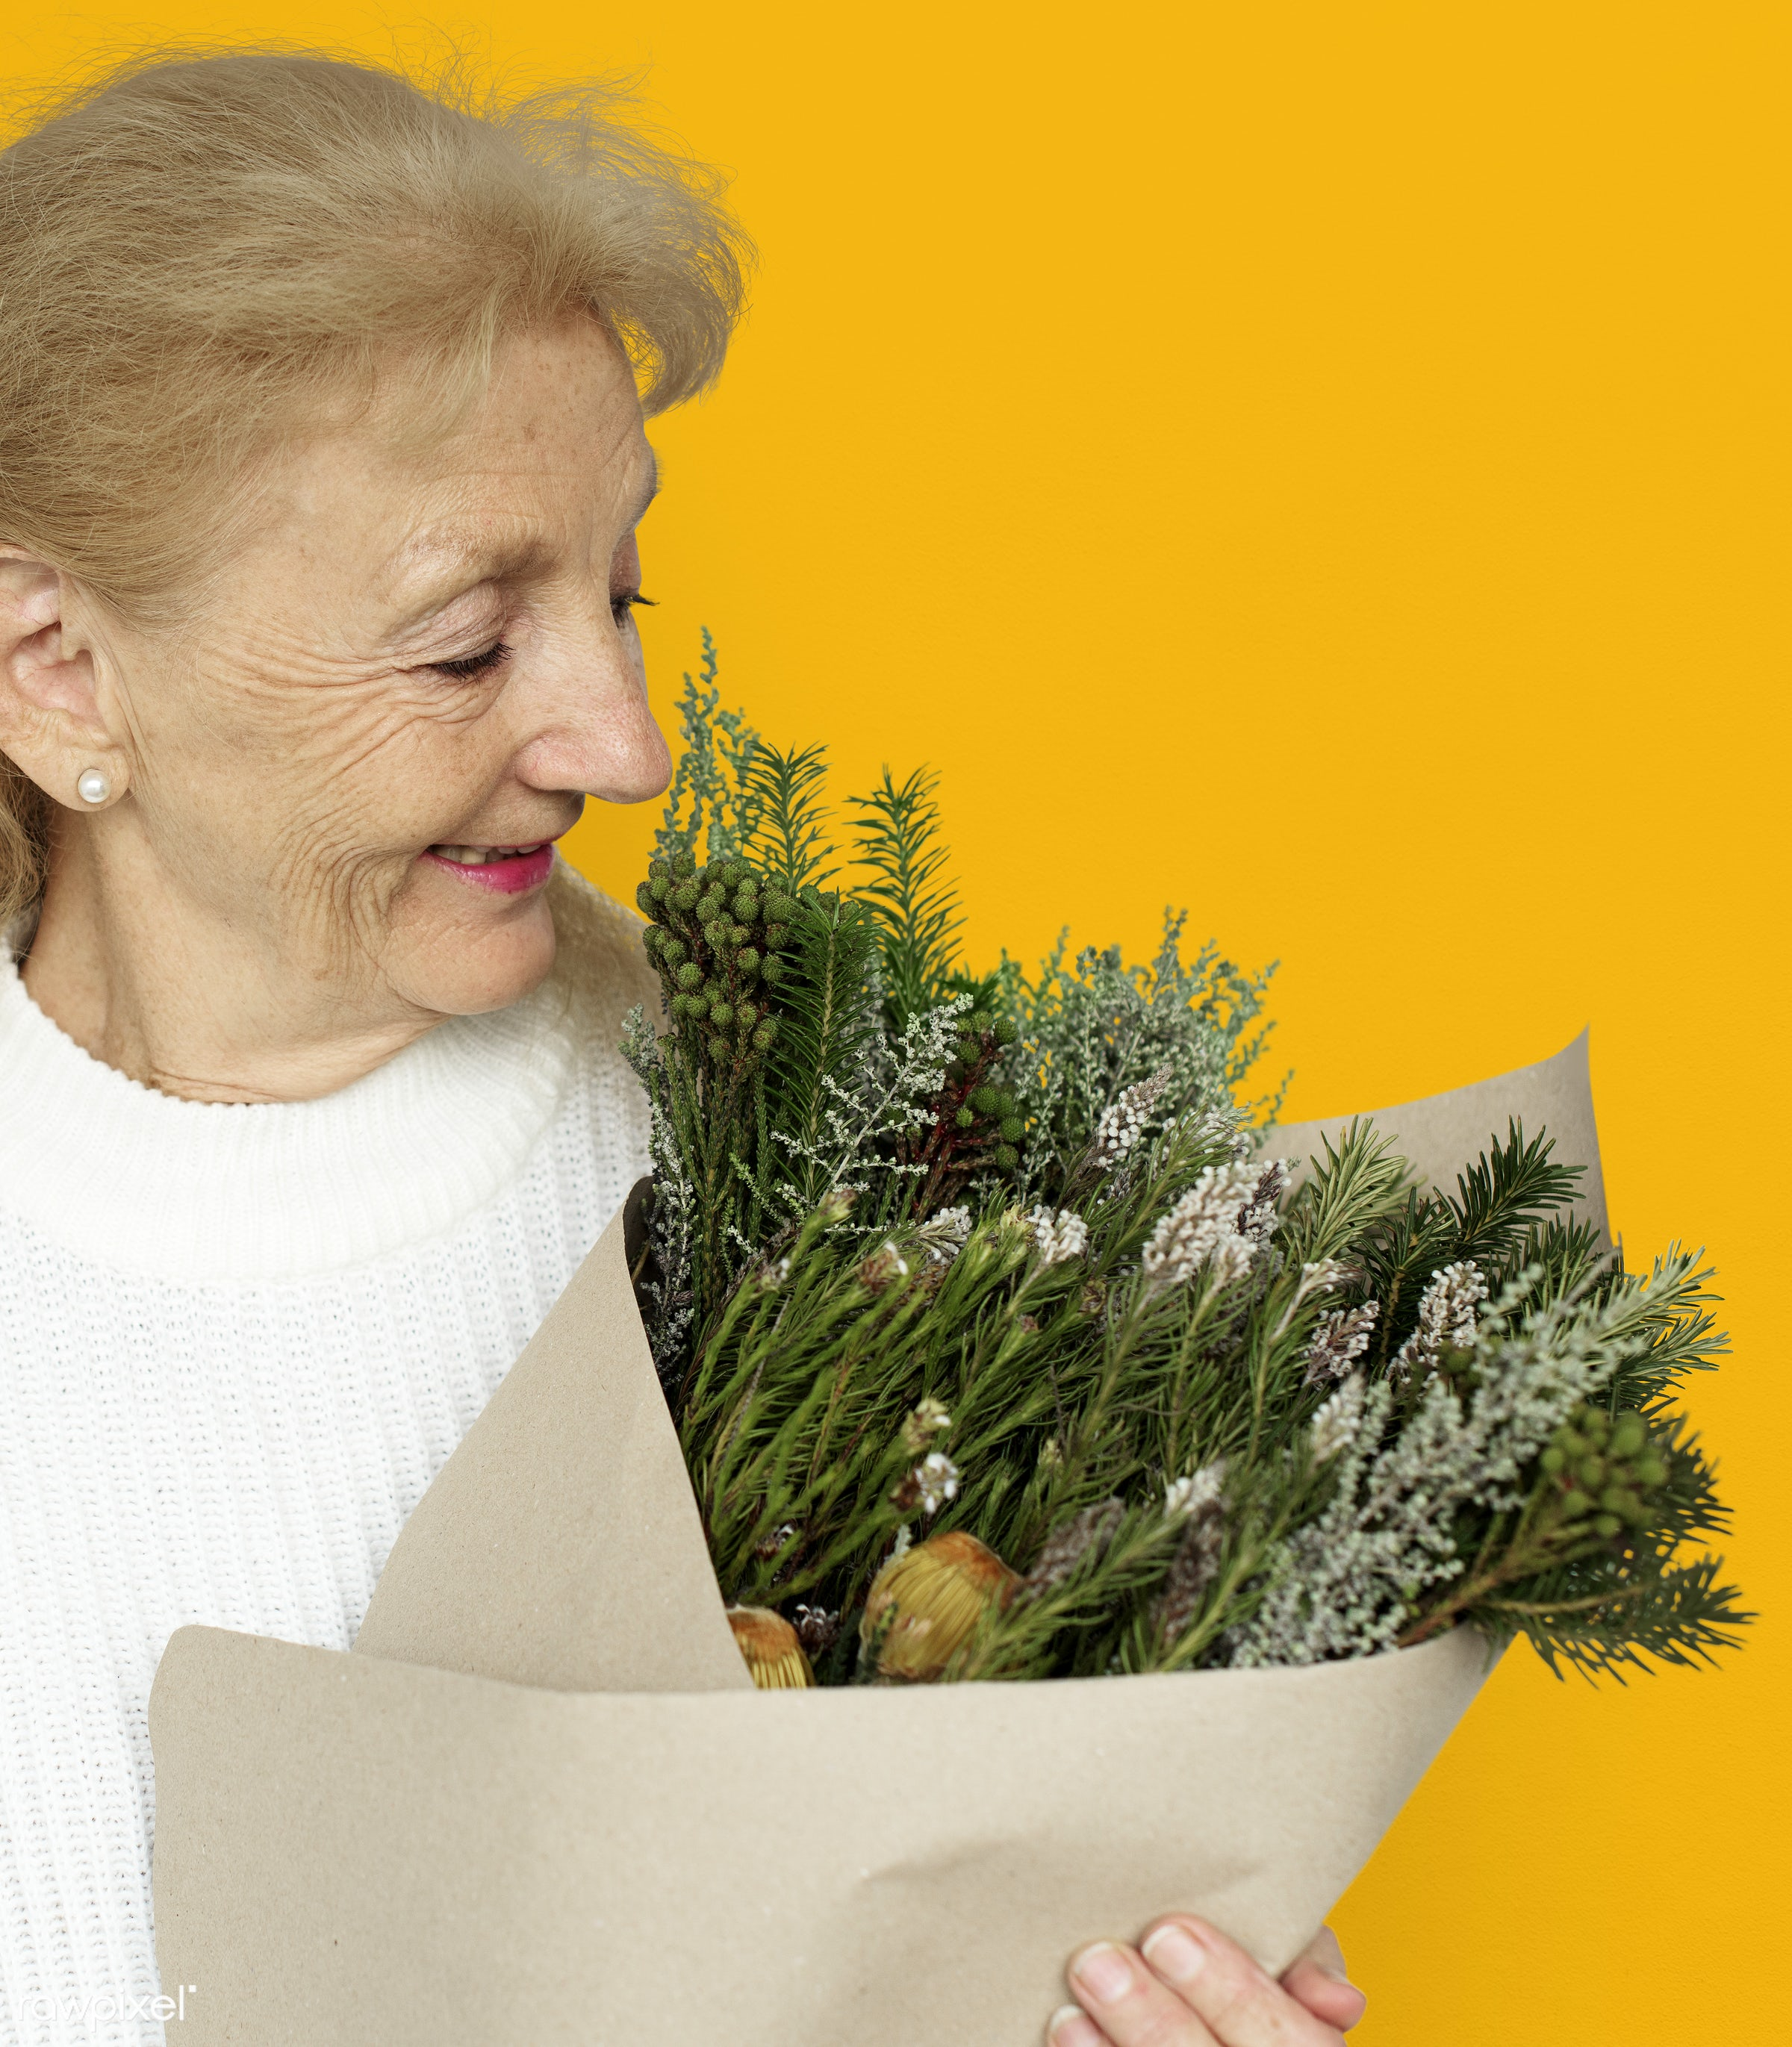 studio, expression, bouquet, person, yellow, people, woman, smile, cheerful, flower, smiling, orange, isolated, happiness,...